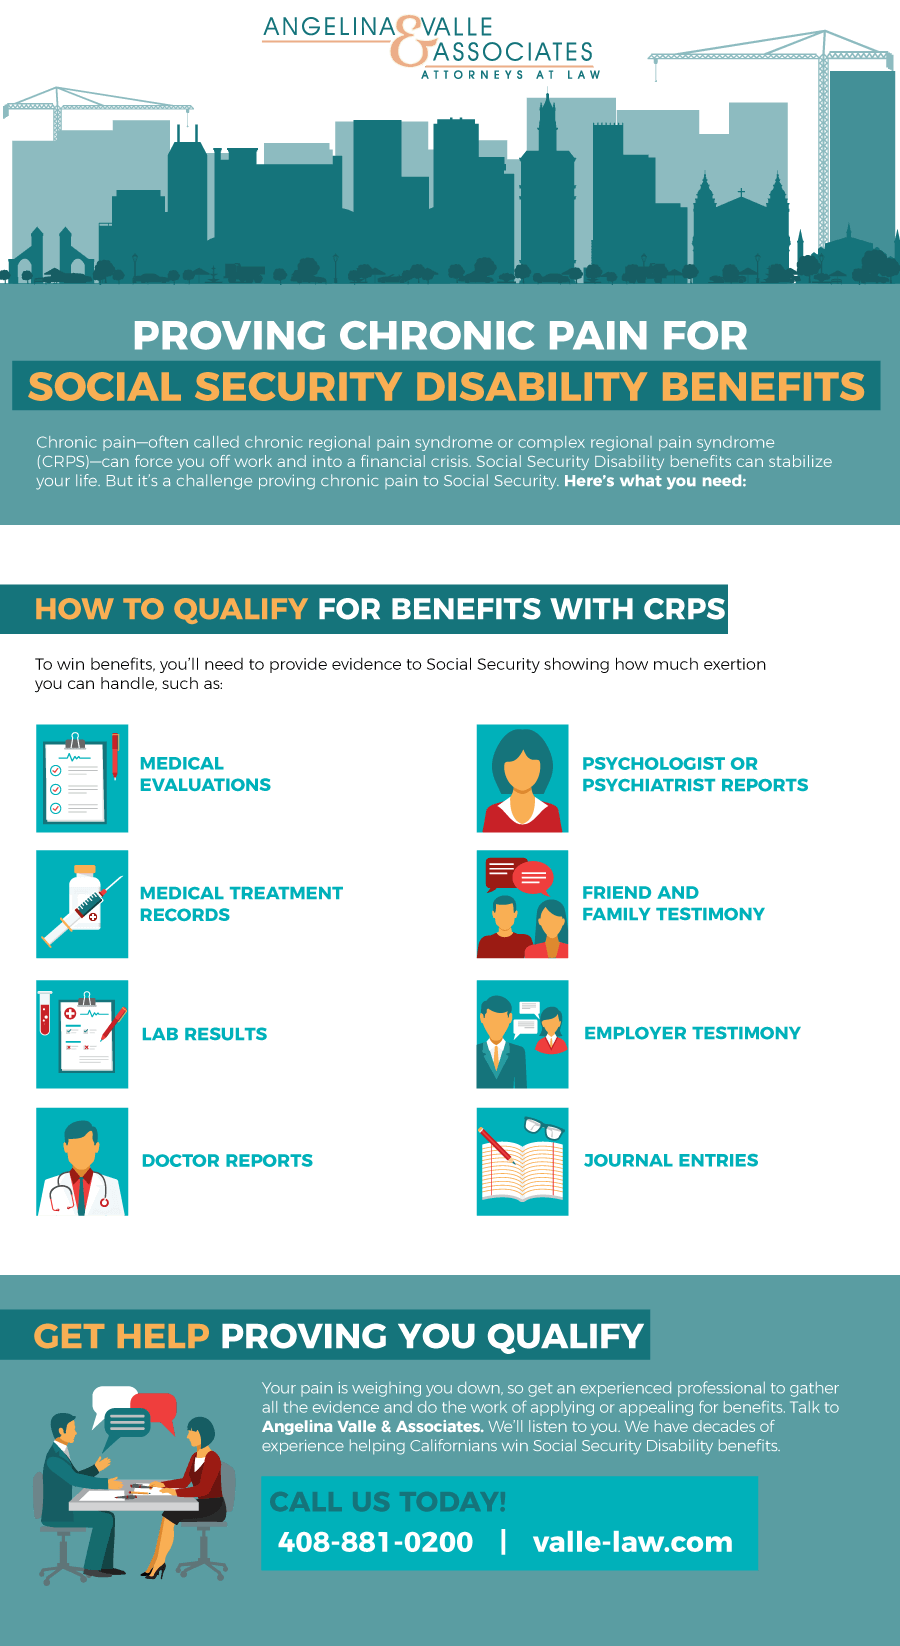 Proving Chronic Pain for Social Security Disability Benefits